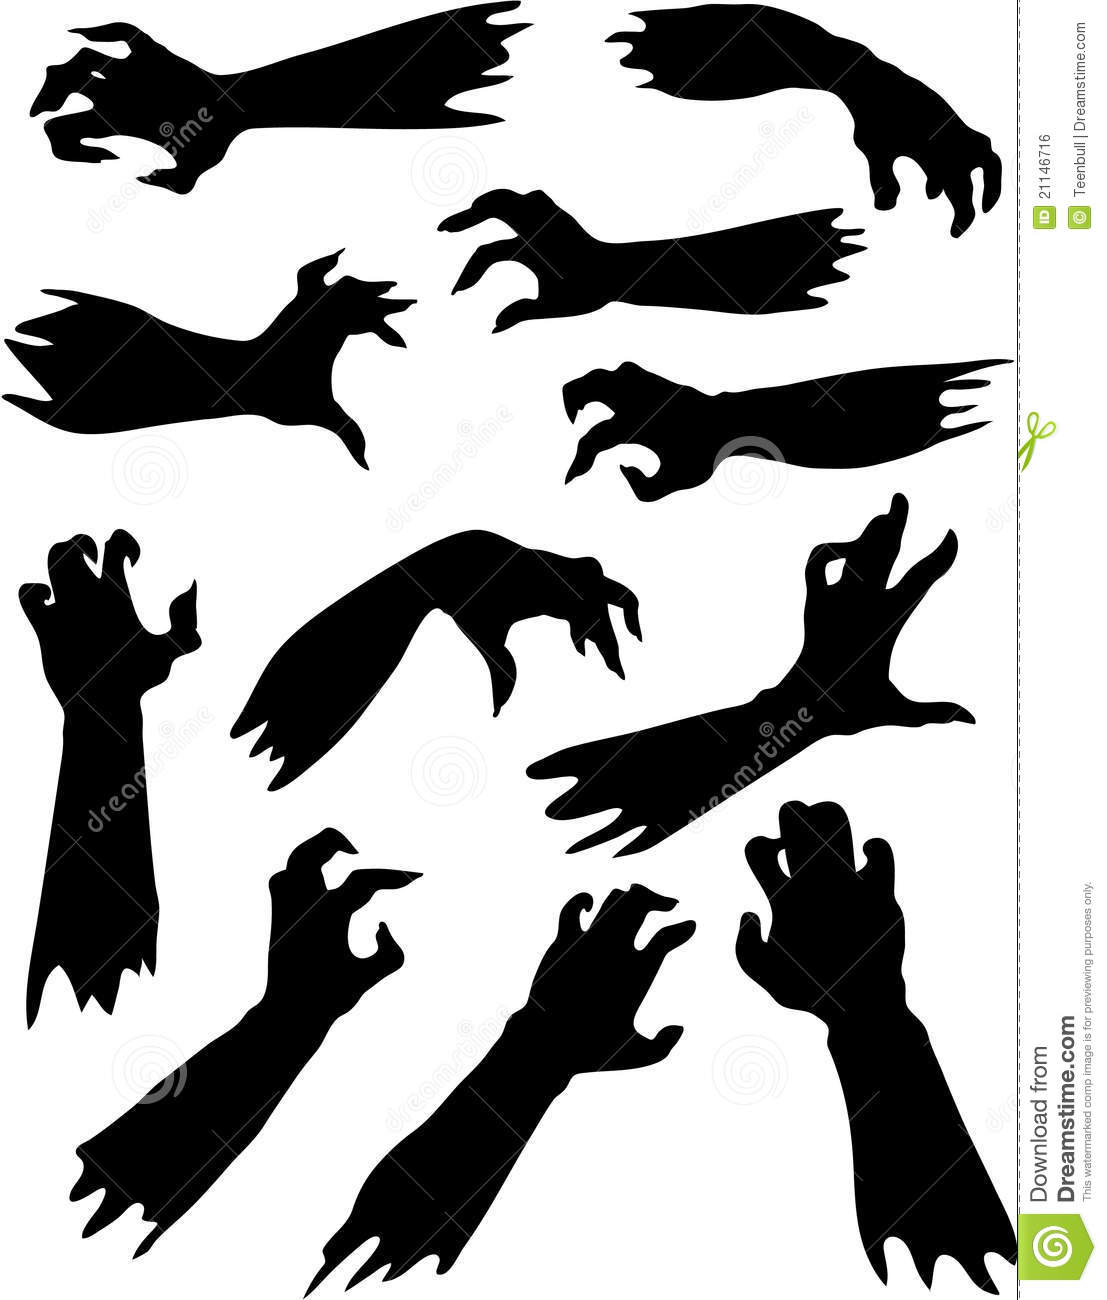 Helloween set of scary zombie hands silhouettes Zombie Hand Silhouette